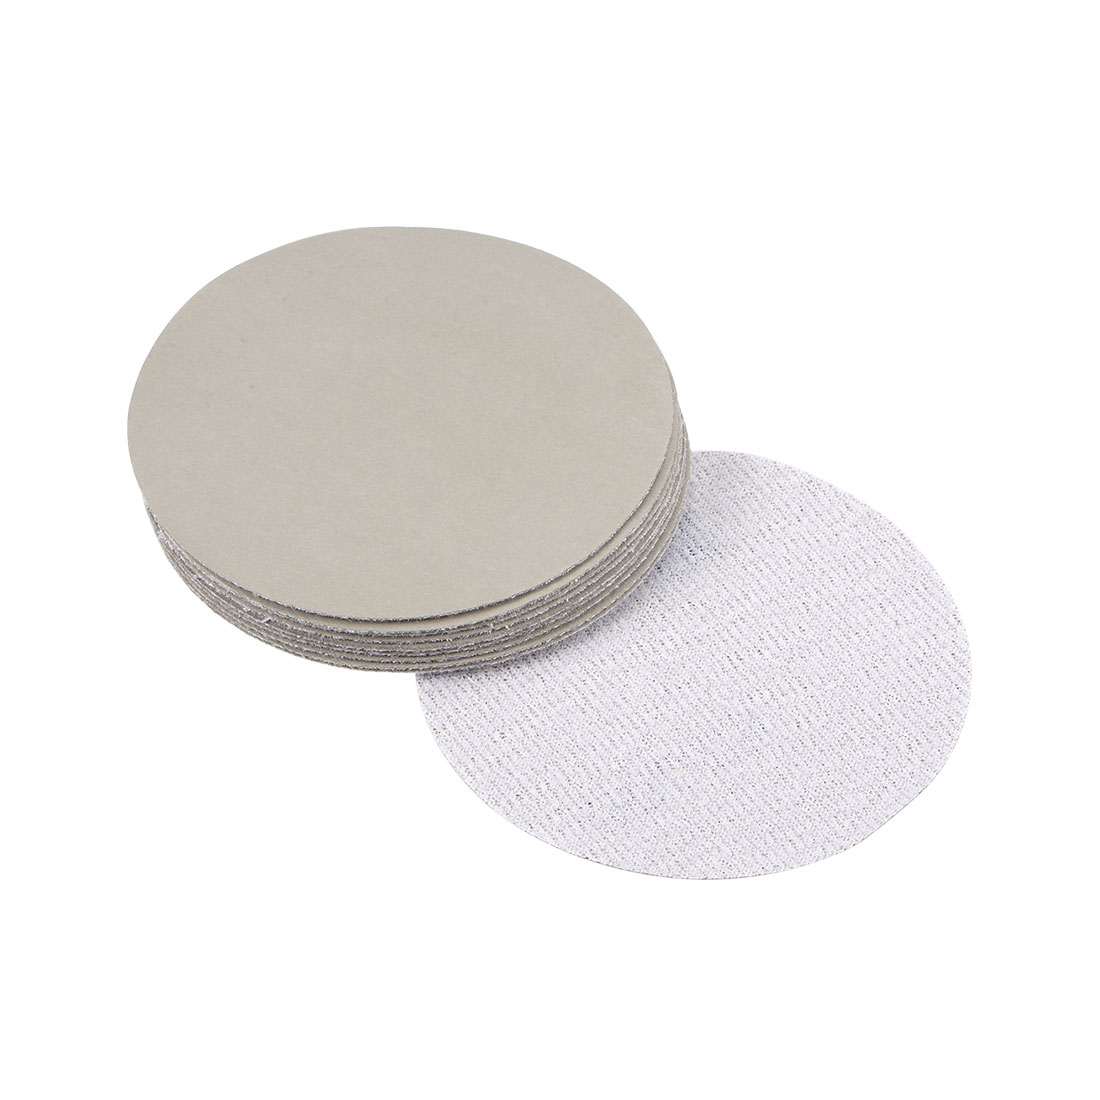 3 inch Wet Dry Discs 4000 Grit Hook and Loop Sanding Disc Silicon Carbide 10pcs